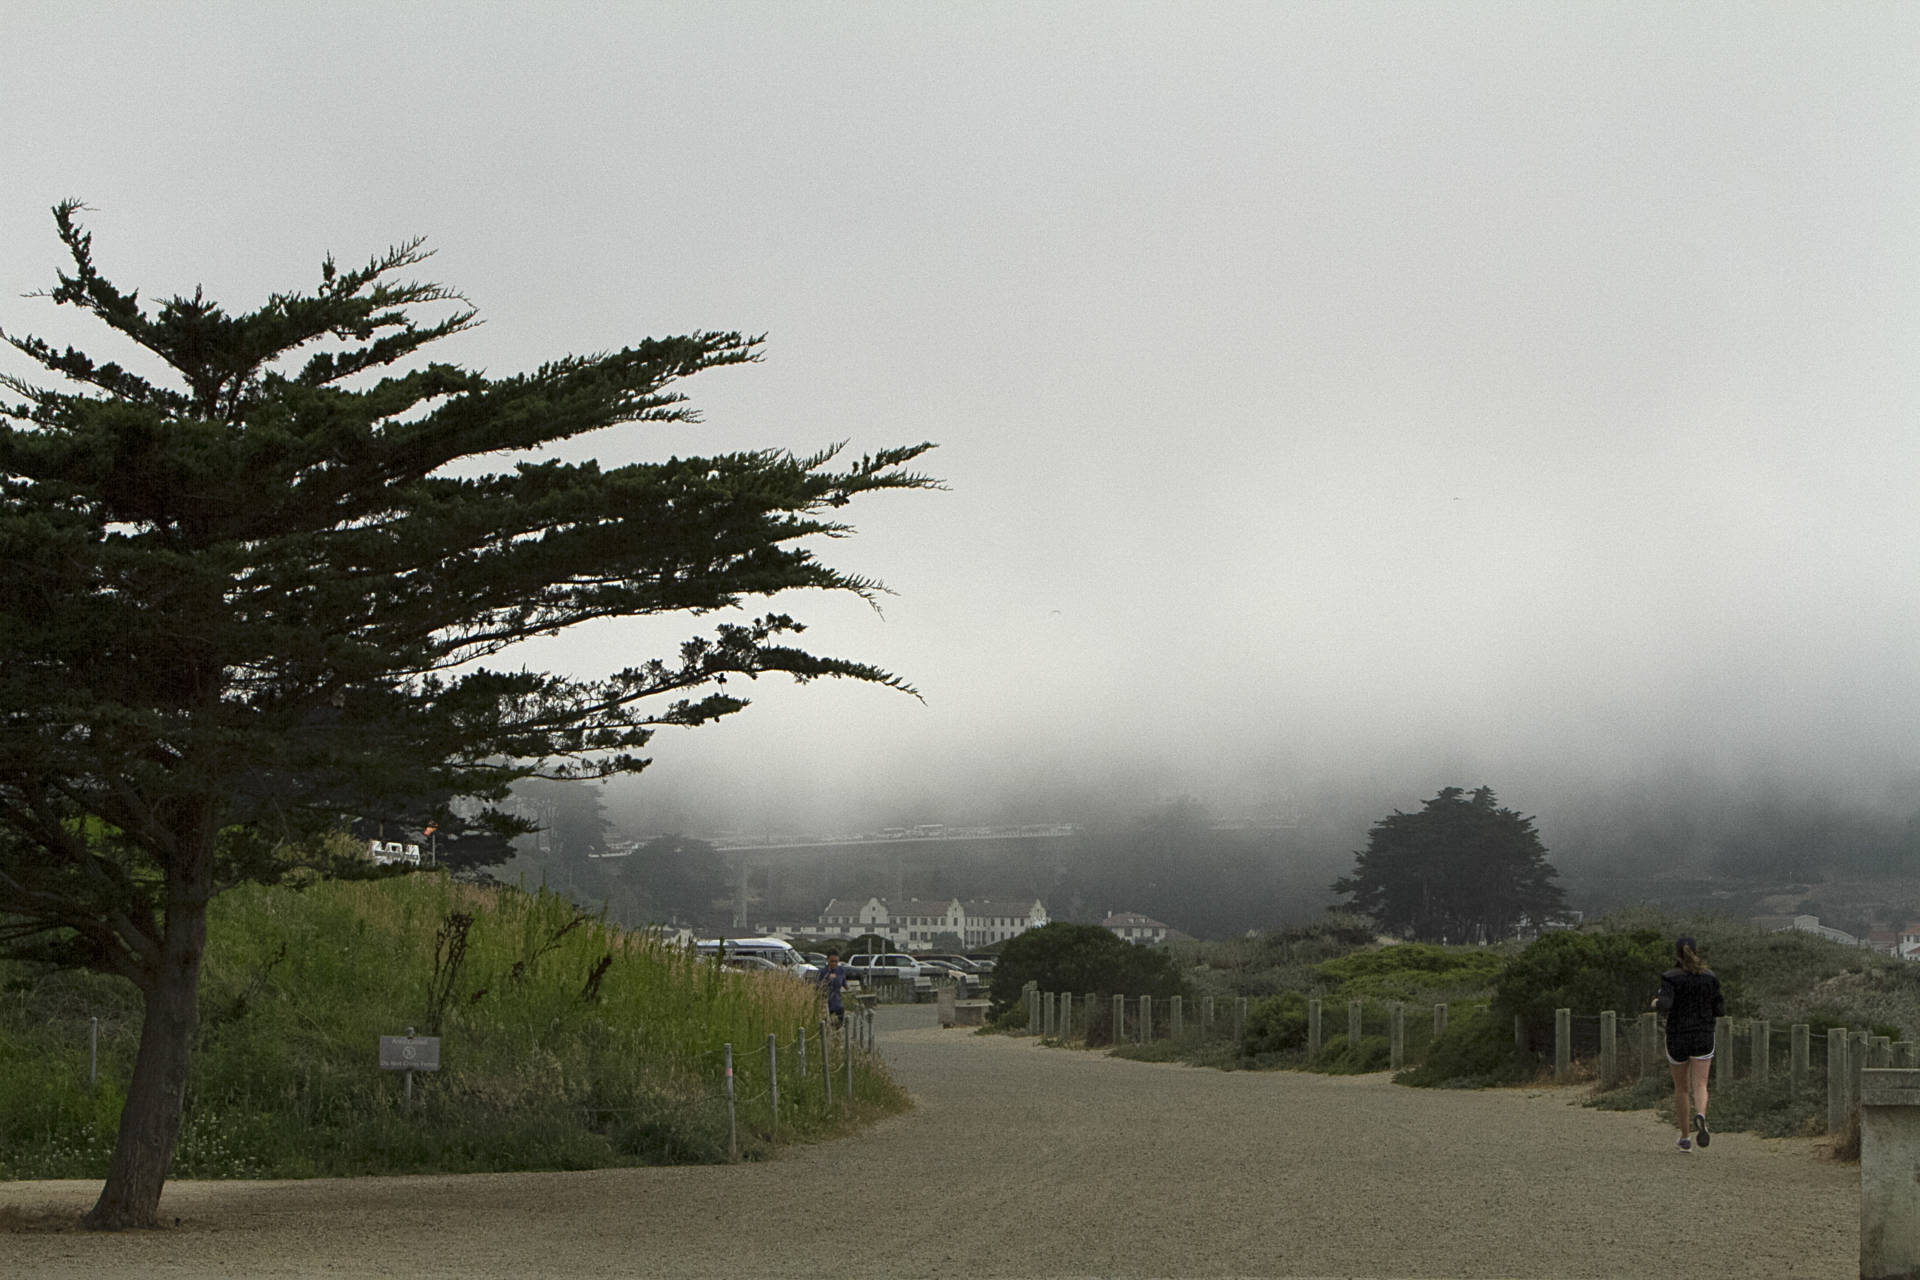 Fog settles over Crissy Field in the Marina neighborhood of San Francisco on July 13, 2018. Anne Wernikoff/KQED